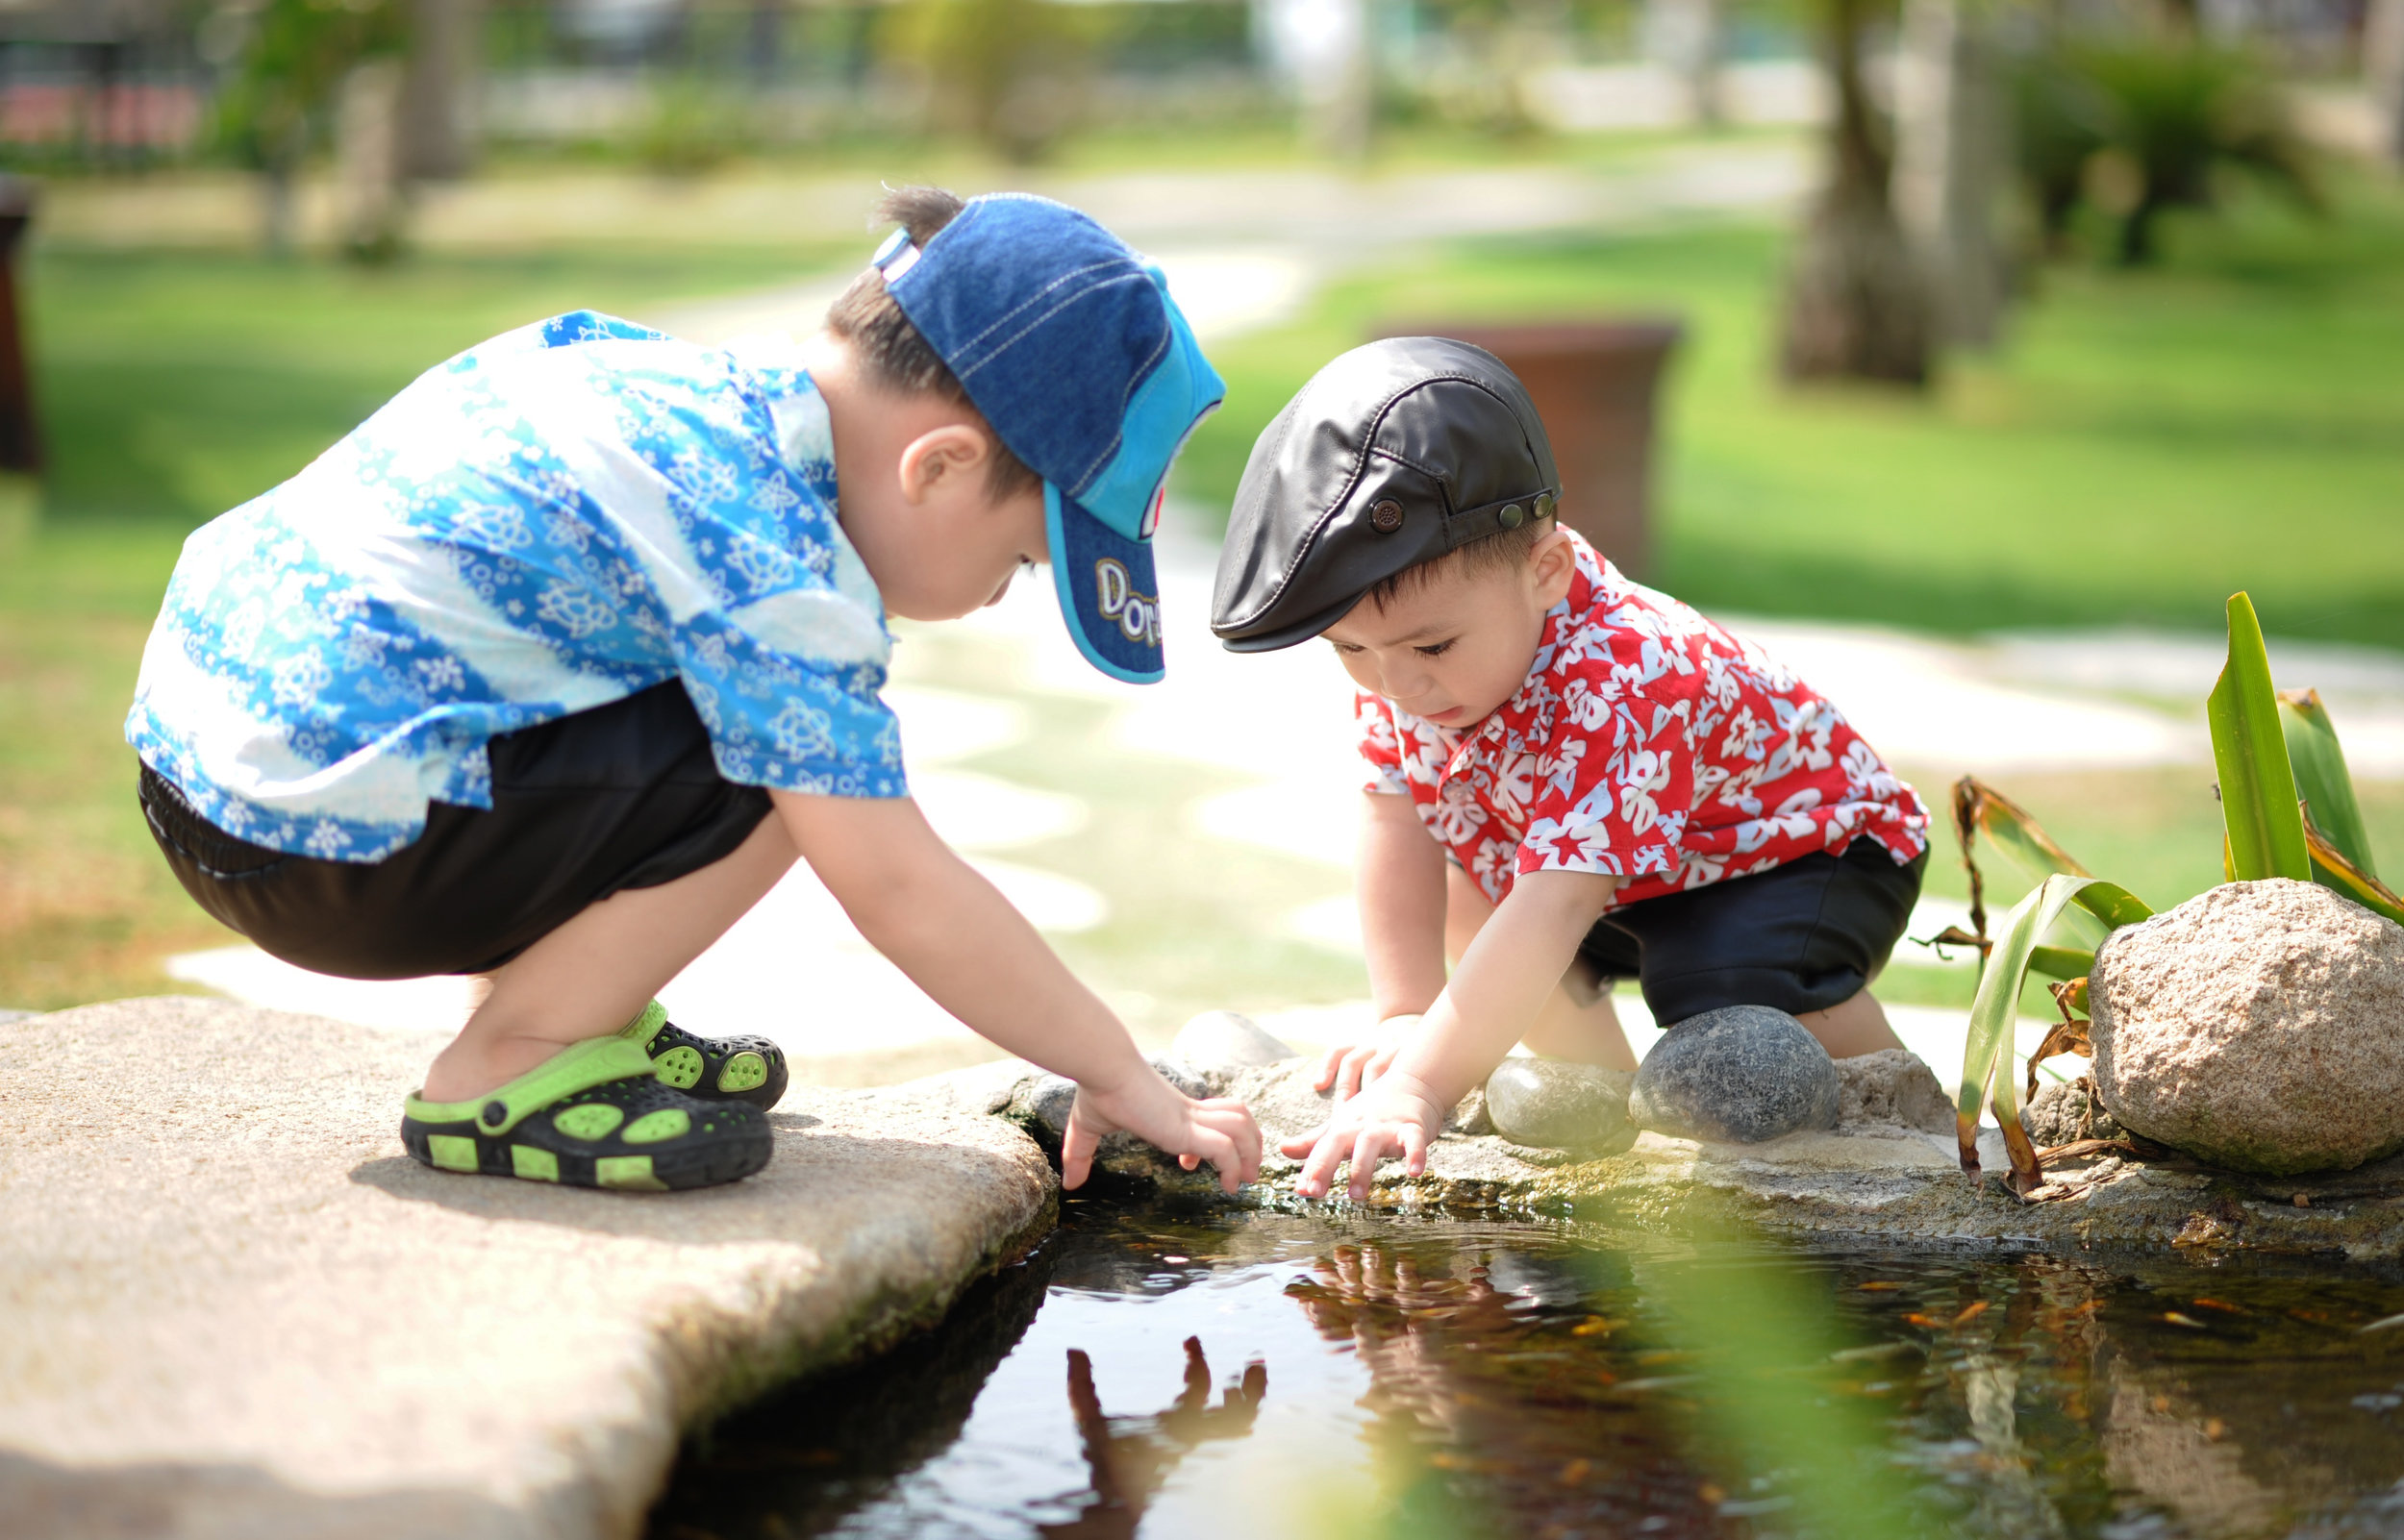 Canva - Boy in Blue and White Shirt Playing Near on Body of Water With Boy in Red Shirt.jpg